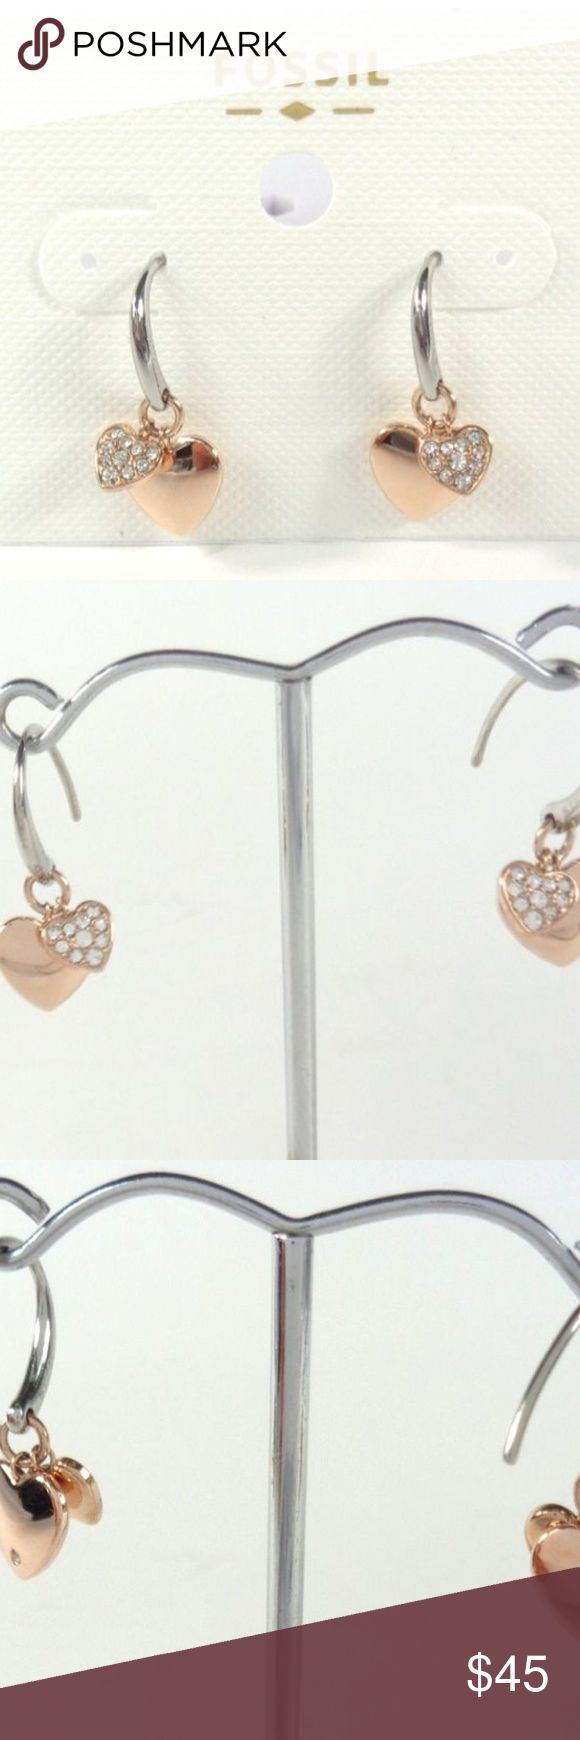 Fossil Rose Gold Crystals Double Heart Earrings SHIPS WITHIN 24 HOURS! 100% AUTHENTIC! NEW WITH TAGS! Fossil Women's Double Hearts Charms Pave Crystals Rose Gold tone Stainless Steel Earrings STYLE # JOF00236791 Stainless Steel Fish Hook Fossil Jewelry Earrings